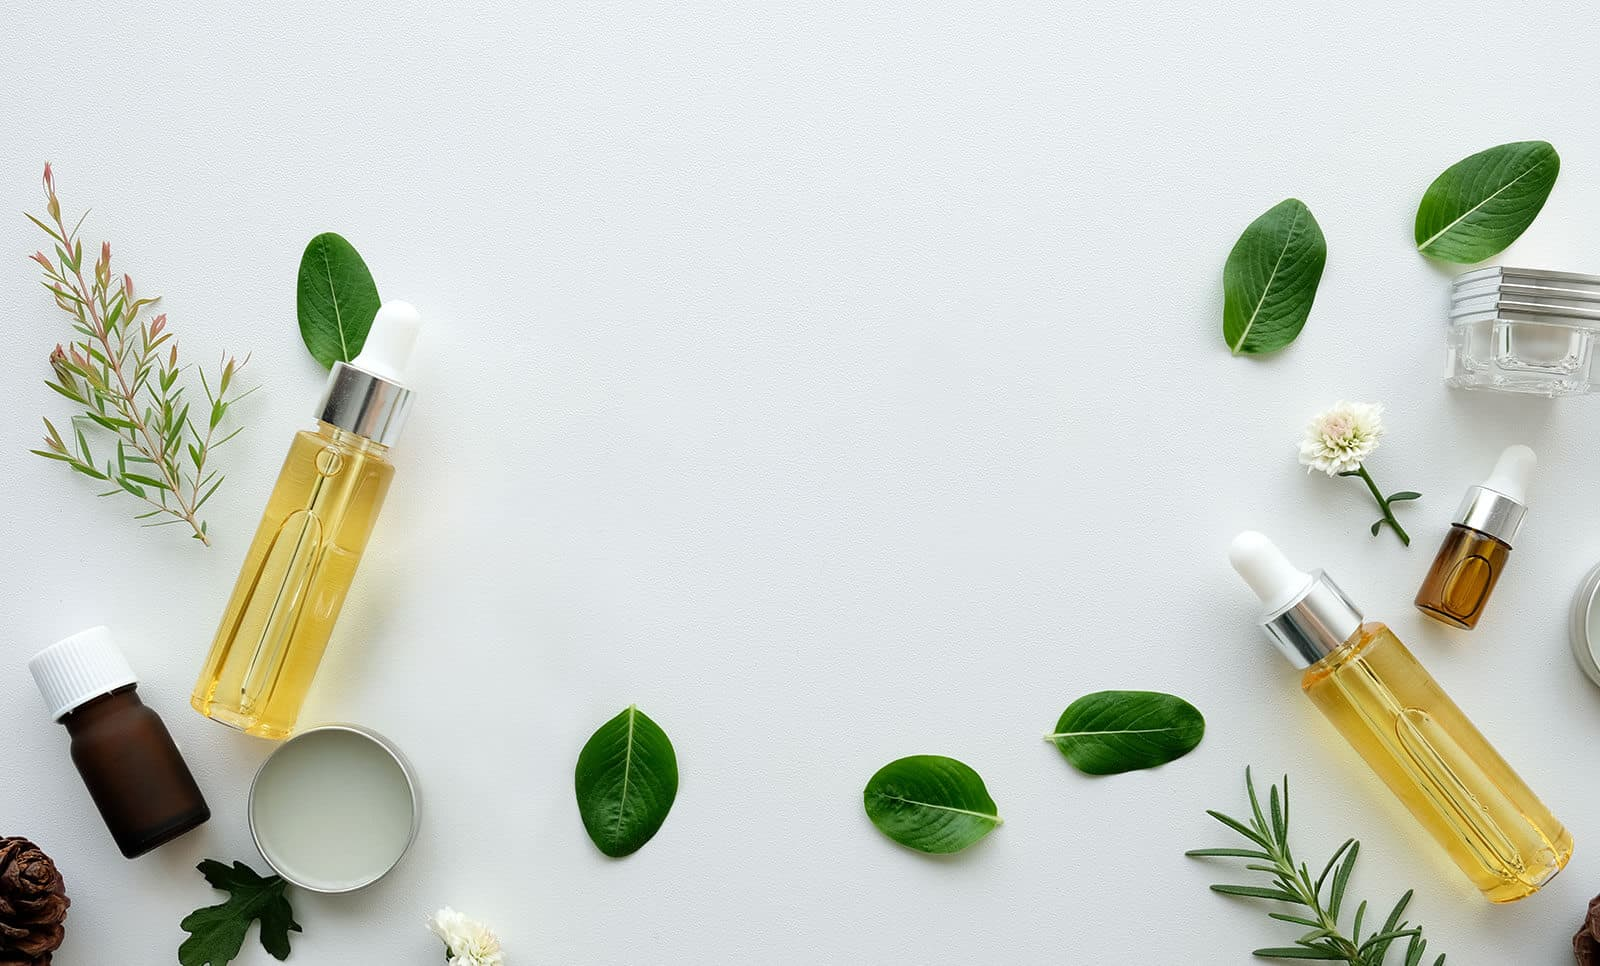 Discover guides about Aromatherapy and Essential Oils.